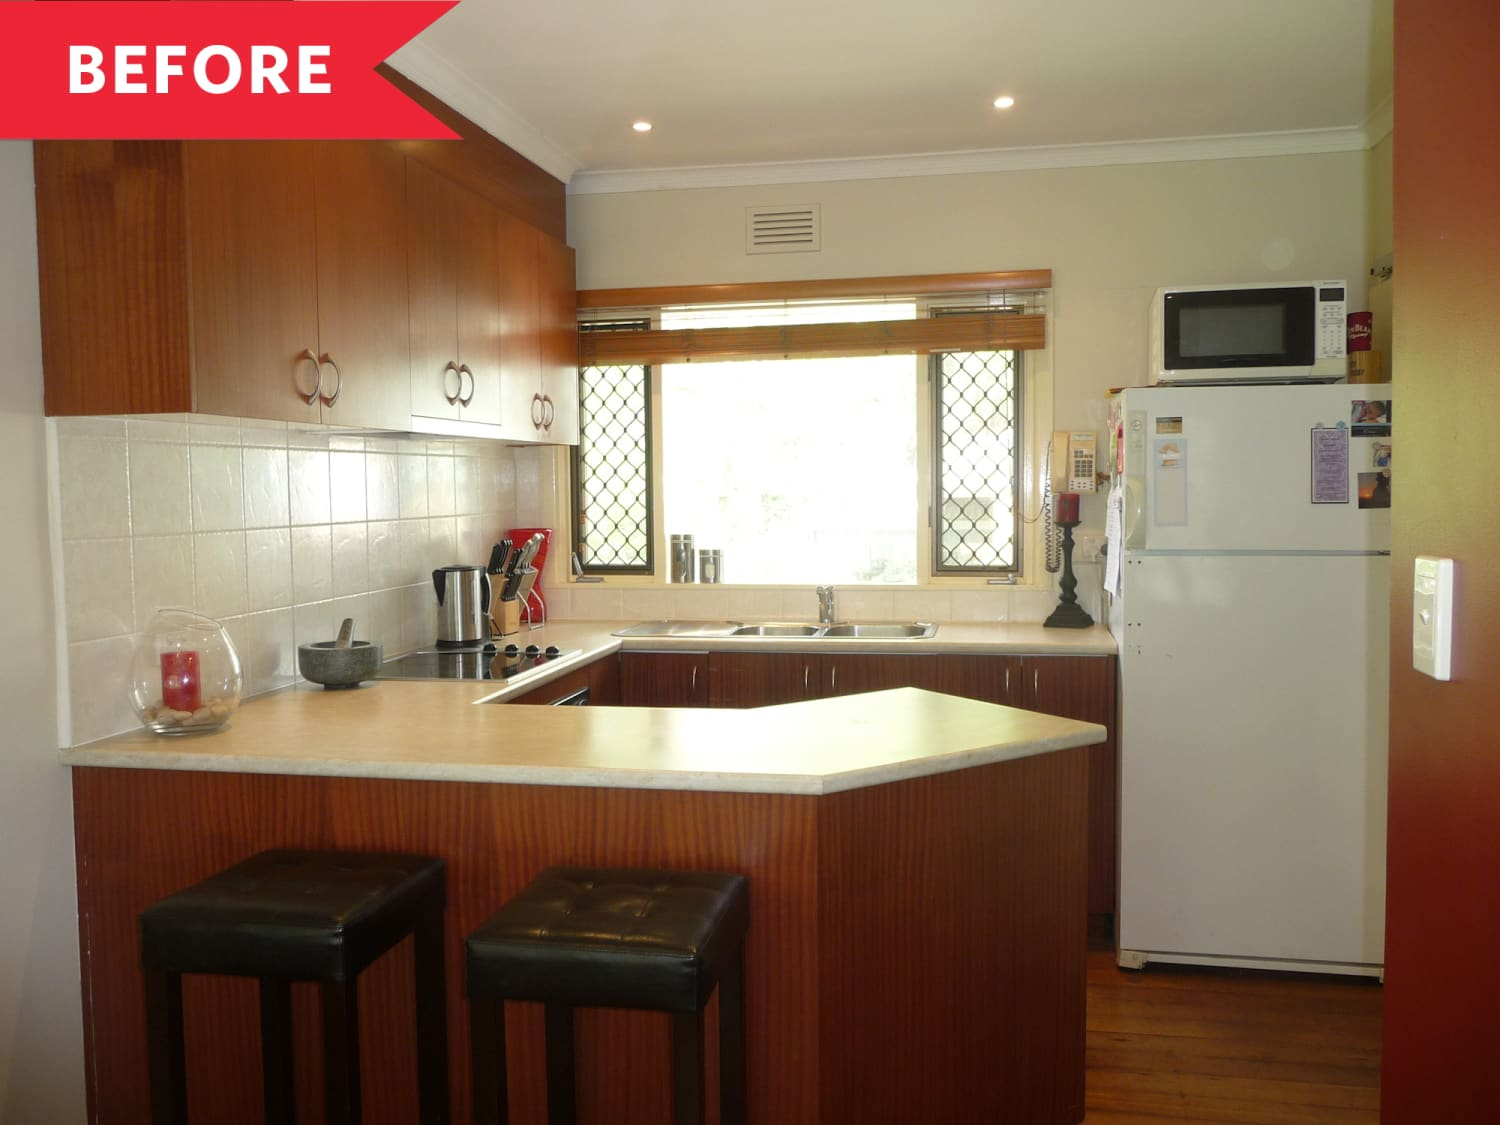 Before and After: A Melbourne Kitchen Gets a Gorgeous Transformation